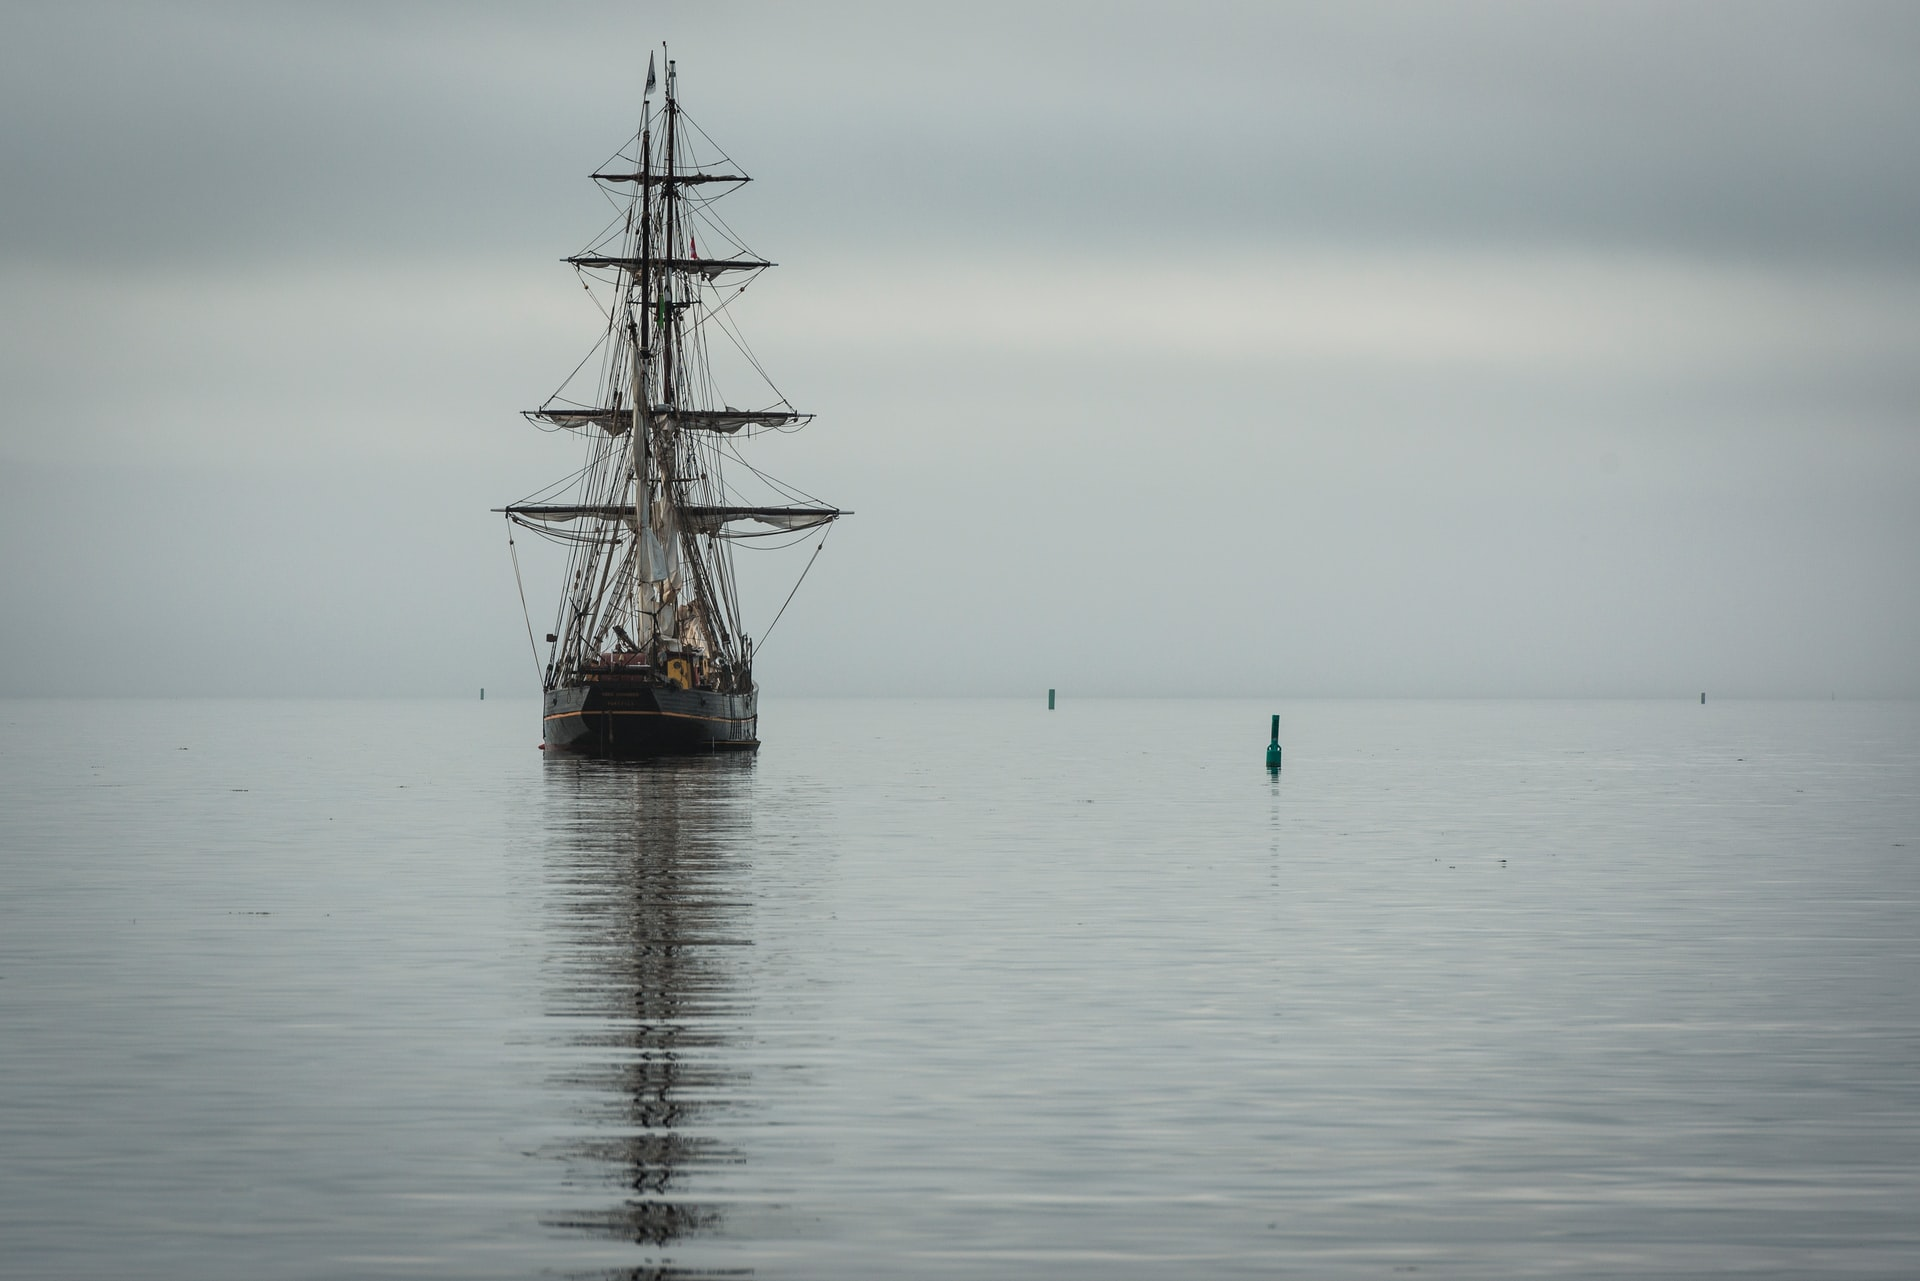 A tall ship, as sung about in the traditional ballad, Shallow Brown